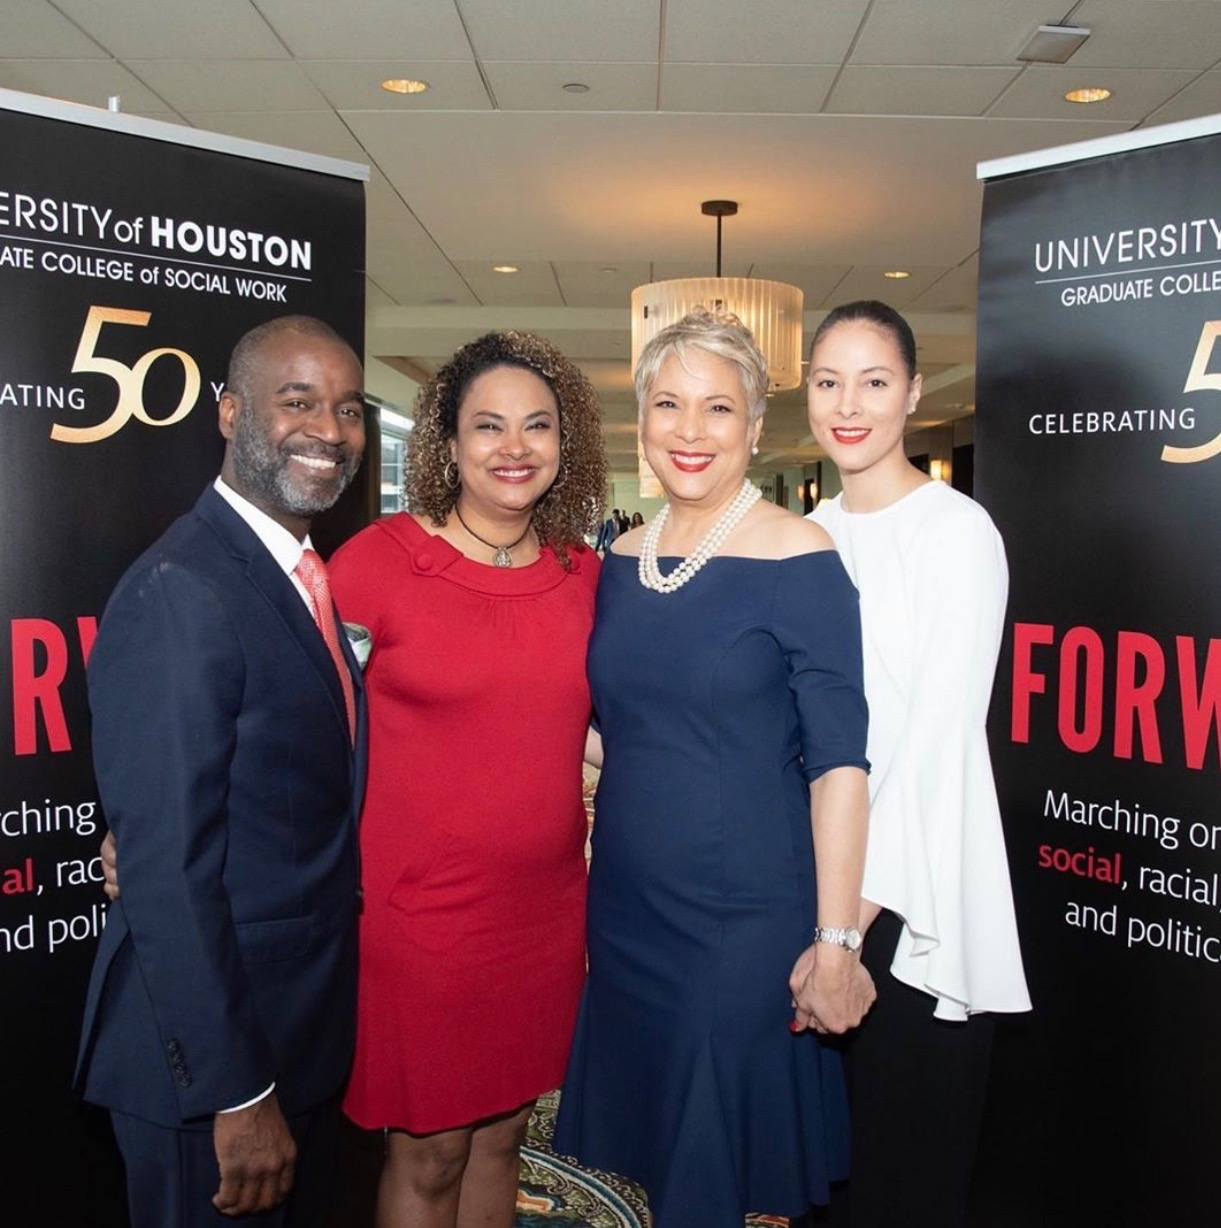 University of Houston Graduate College of Social Work Luncheon: Celebrating 50 Years. April 11th, 2019 at the Hilton Americas in Houston, Texas. Photo from Left to Right: Mark Anthony Hawkins, AVM Hawkins, Laurie Vignaud and Lindsey Vignaud Marshall Ott.